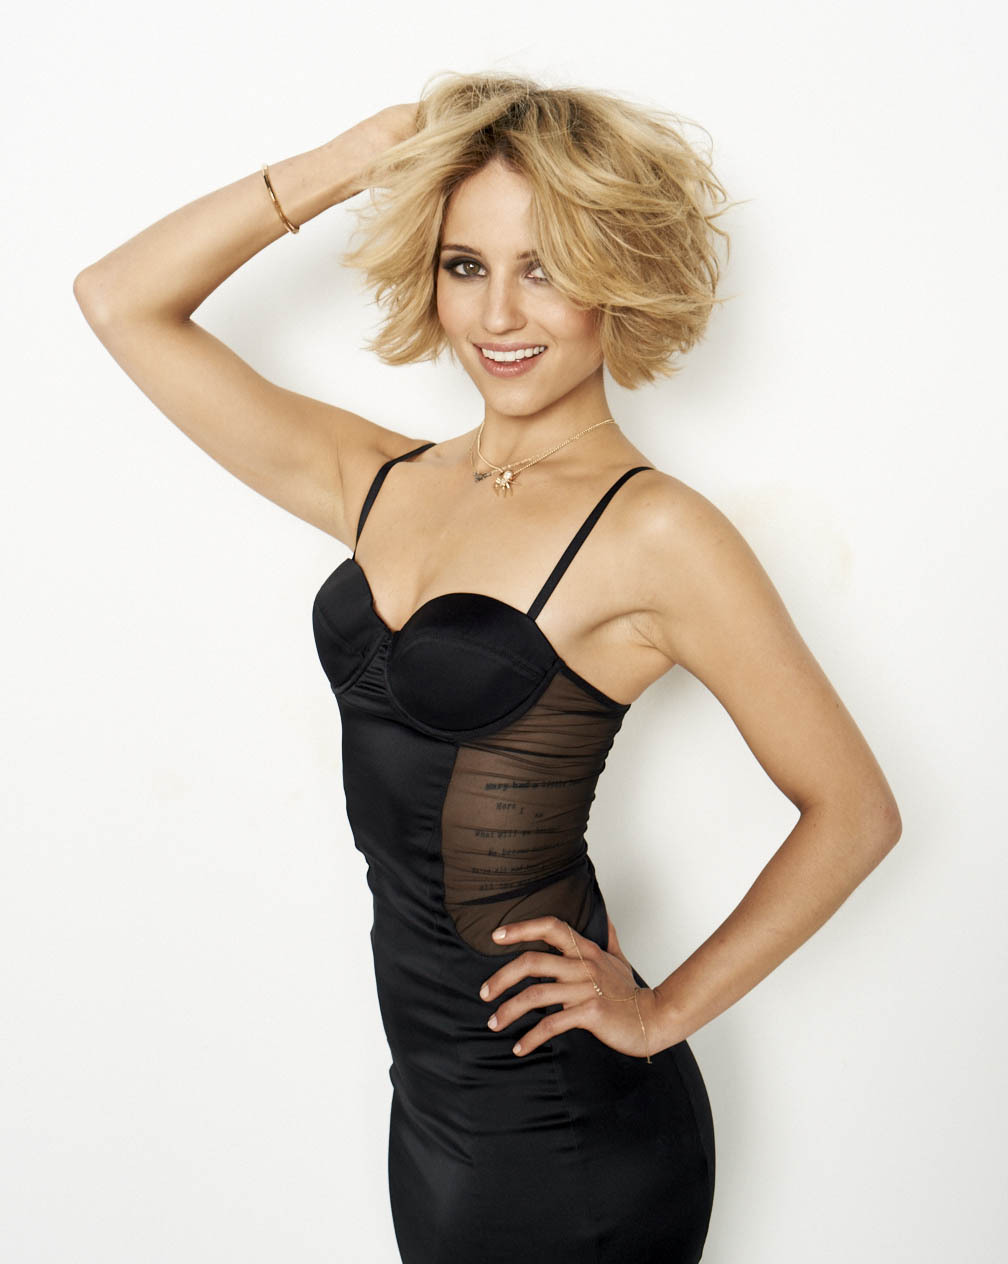 Did Dianna Agron Get A Plastic Surgery? | TheCount.com